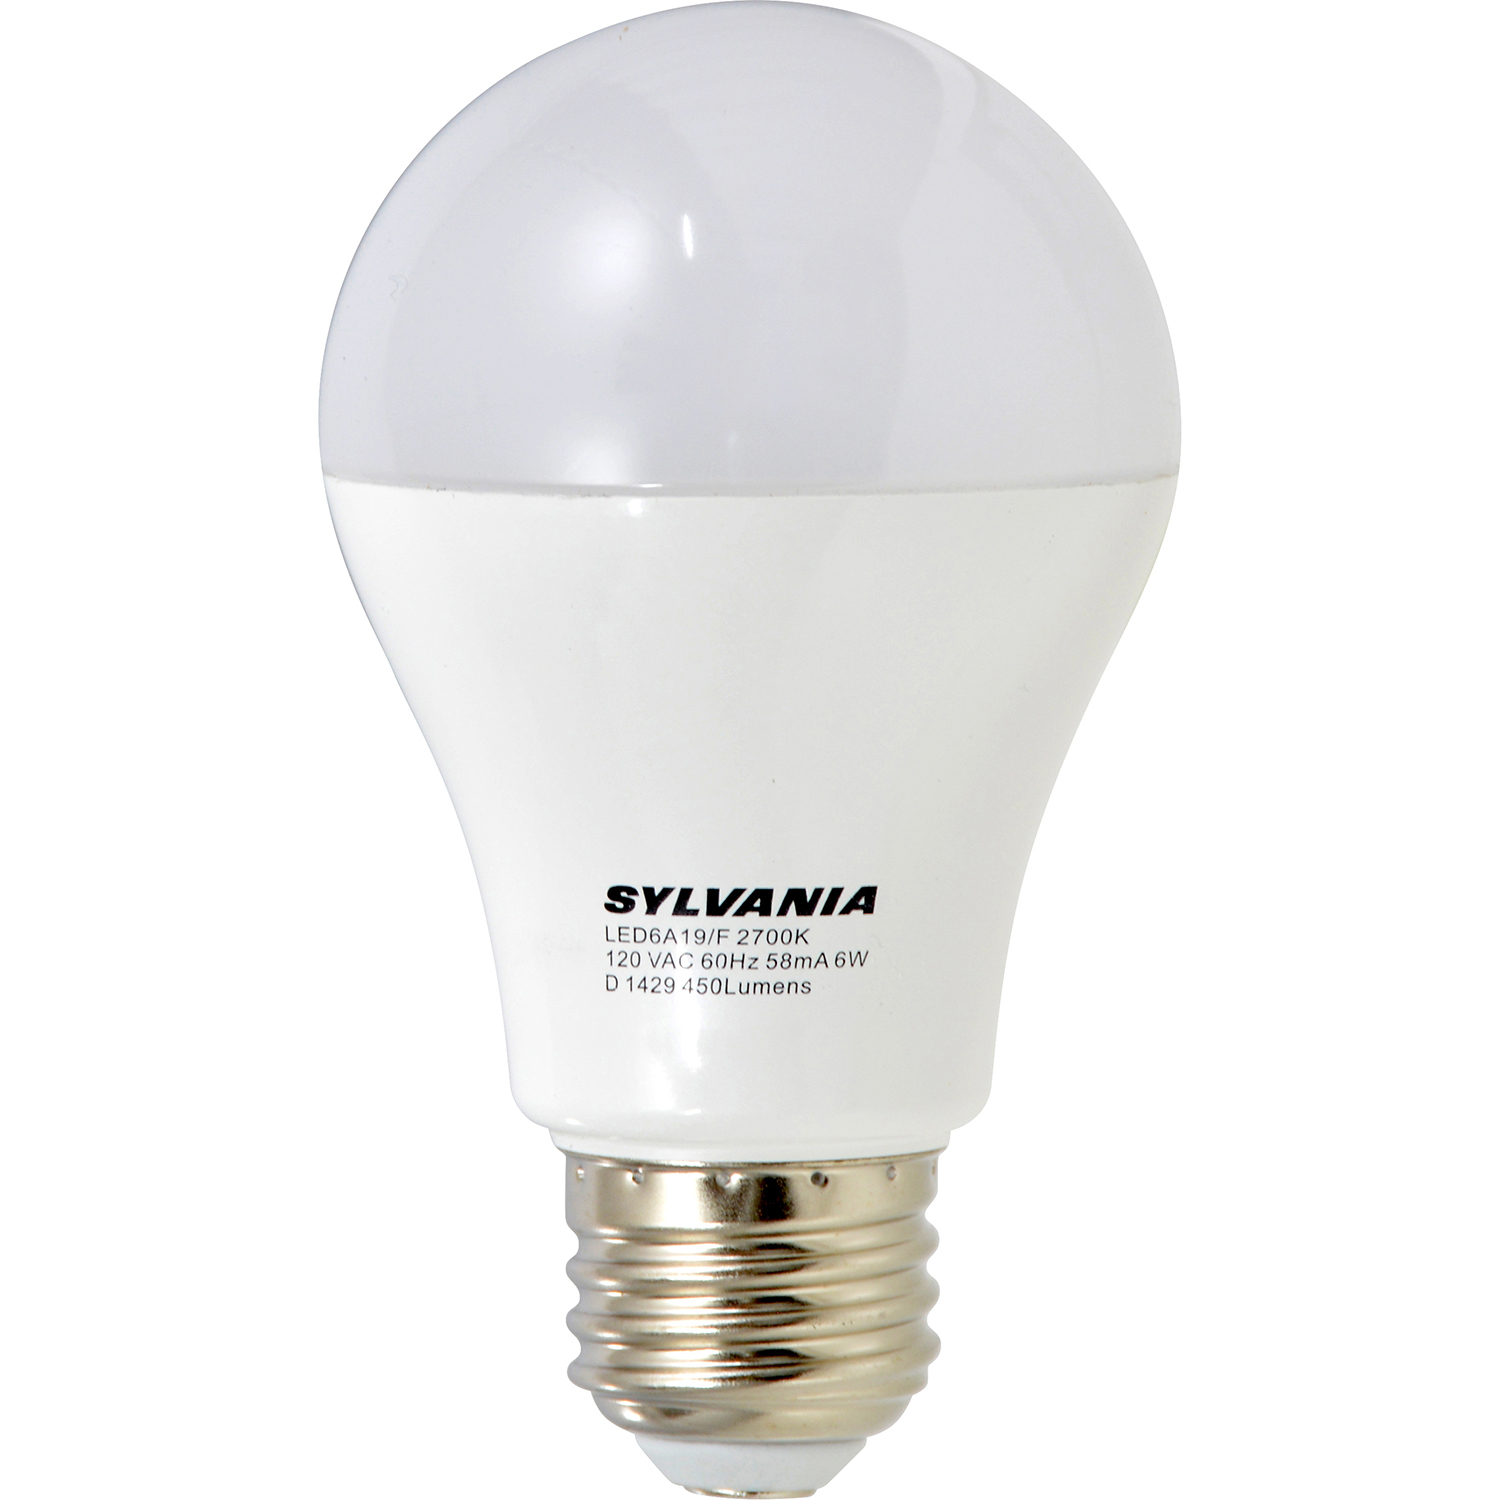 Sylvania A19 40w E26 Non Dimmable Soft White Led Light Bulbs 12 Bulbs 73642: sylvania bulbs